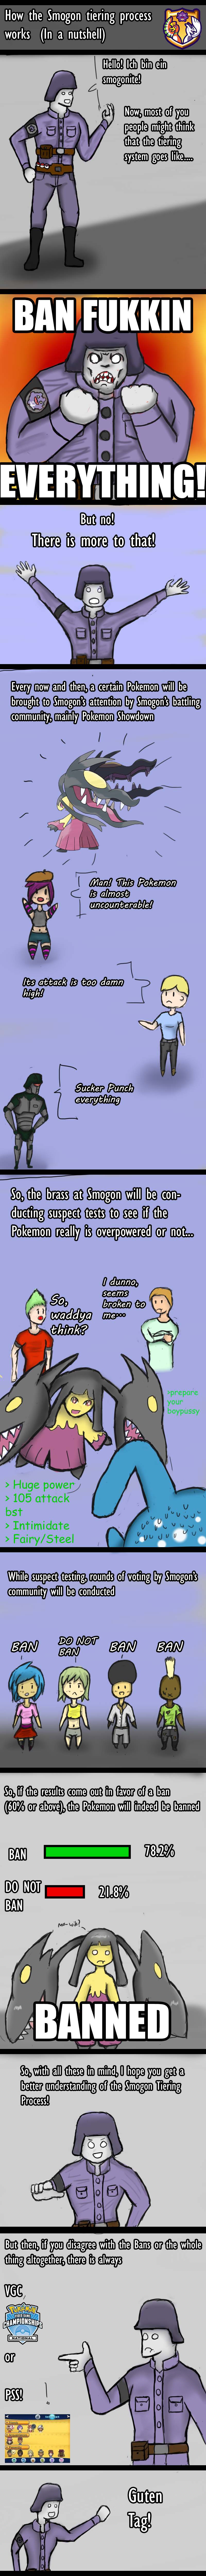 Smogon's tiering system in a nutshell by ChromeFlames